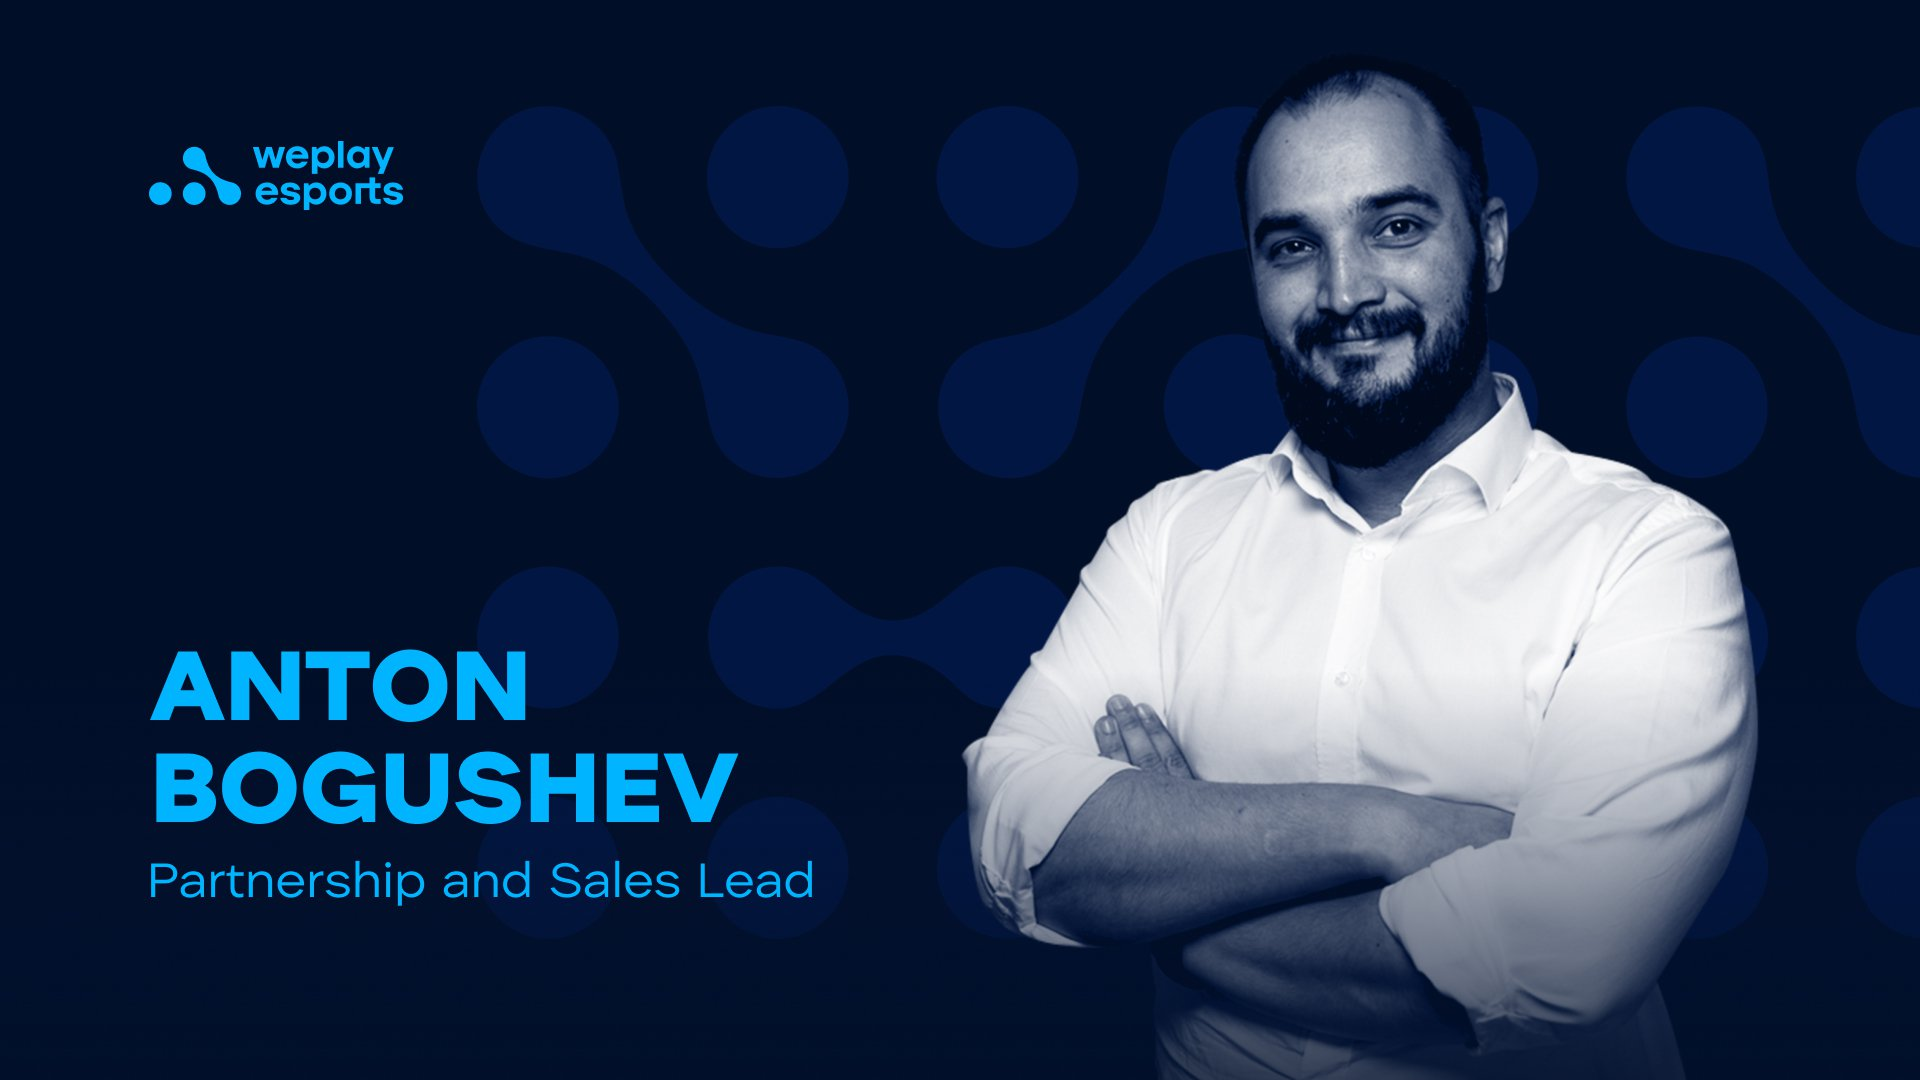 Anton Bogushev is the new Partnership and Sales Lead at WePlay Holding